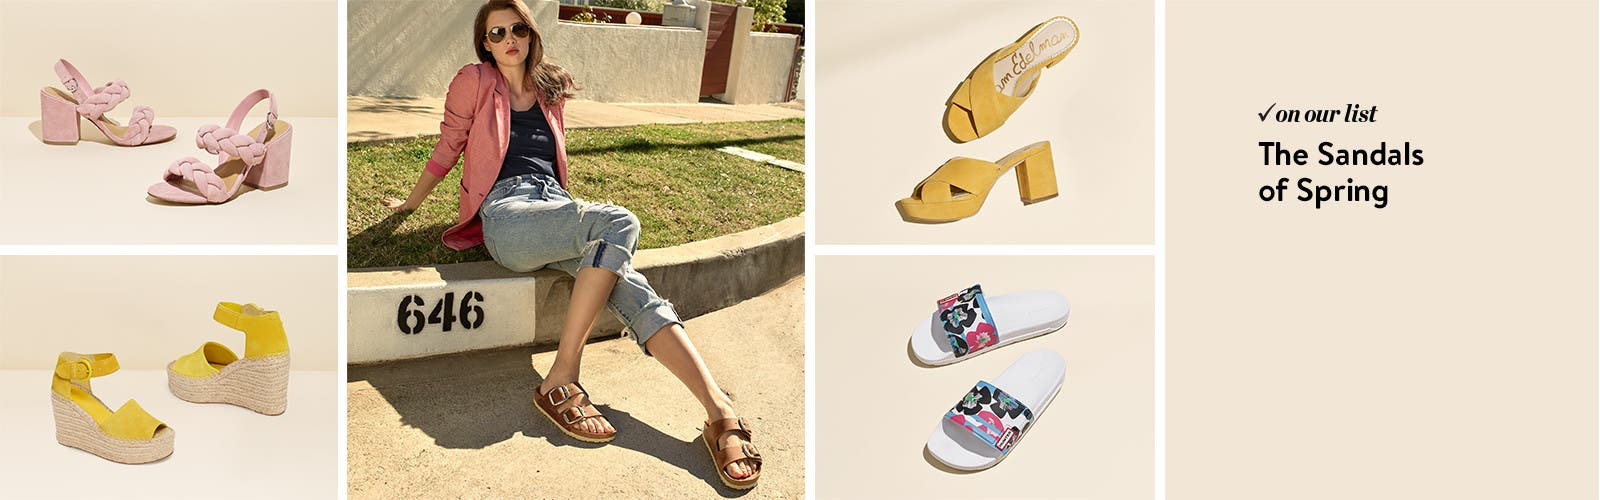 Women's sandals for spring.